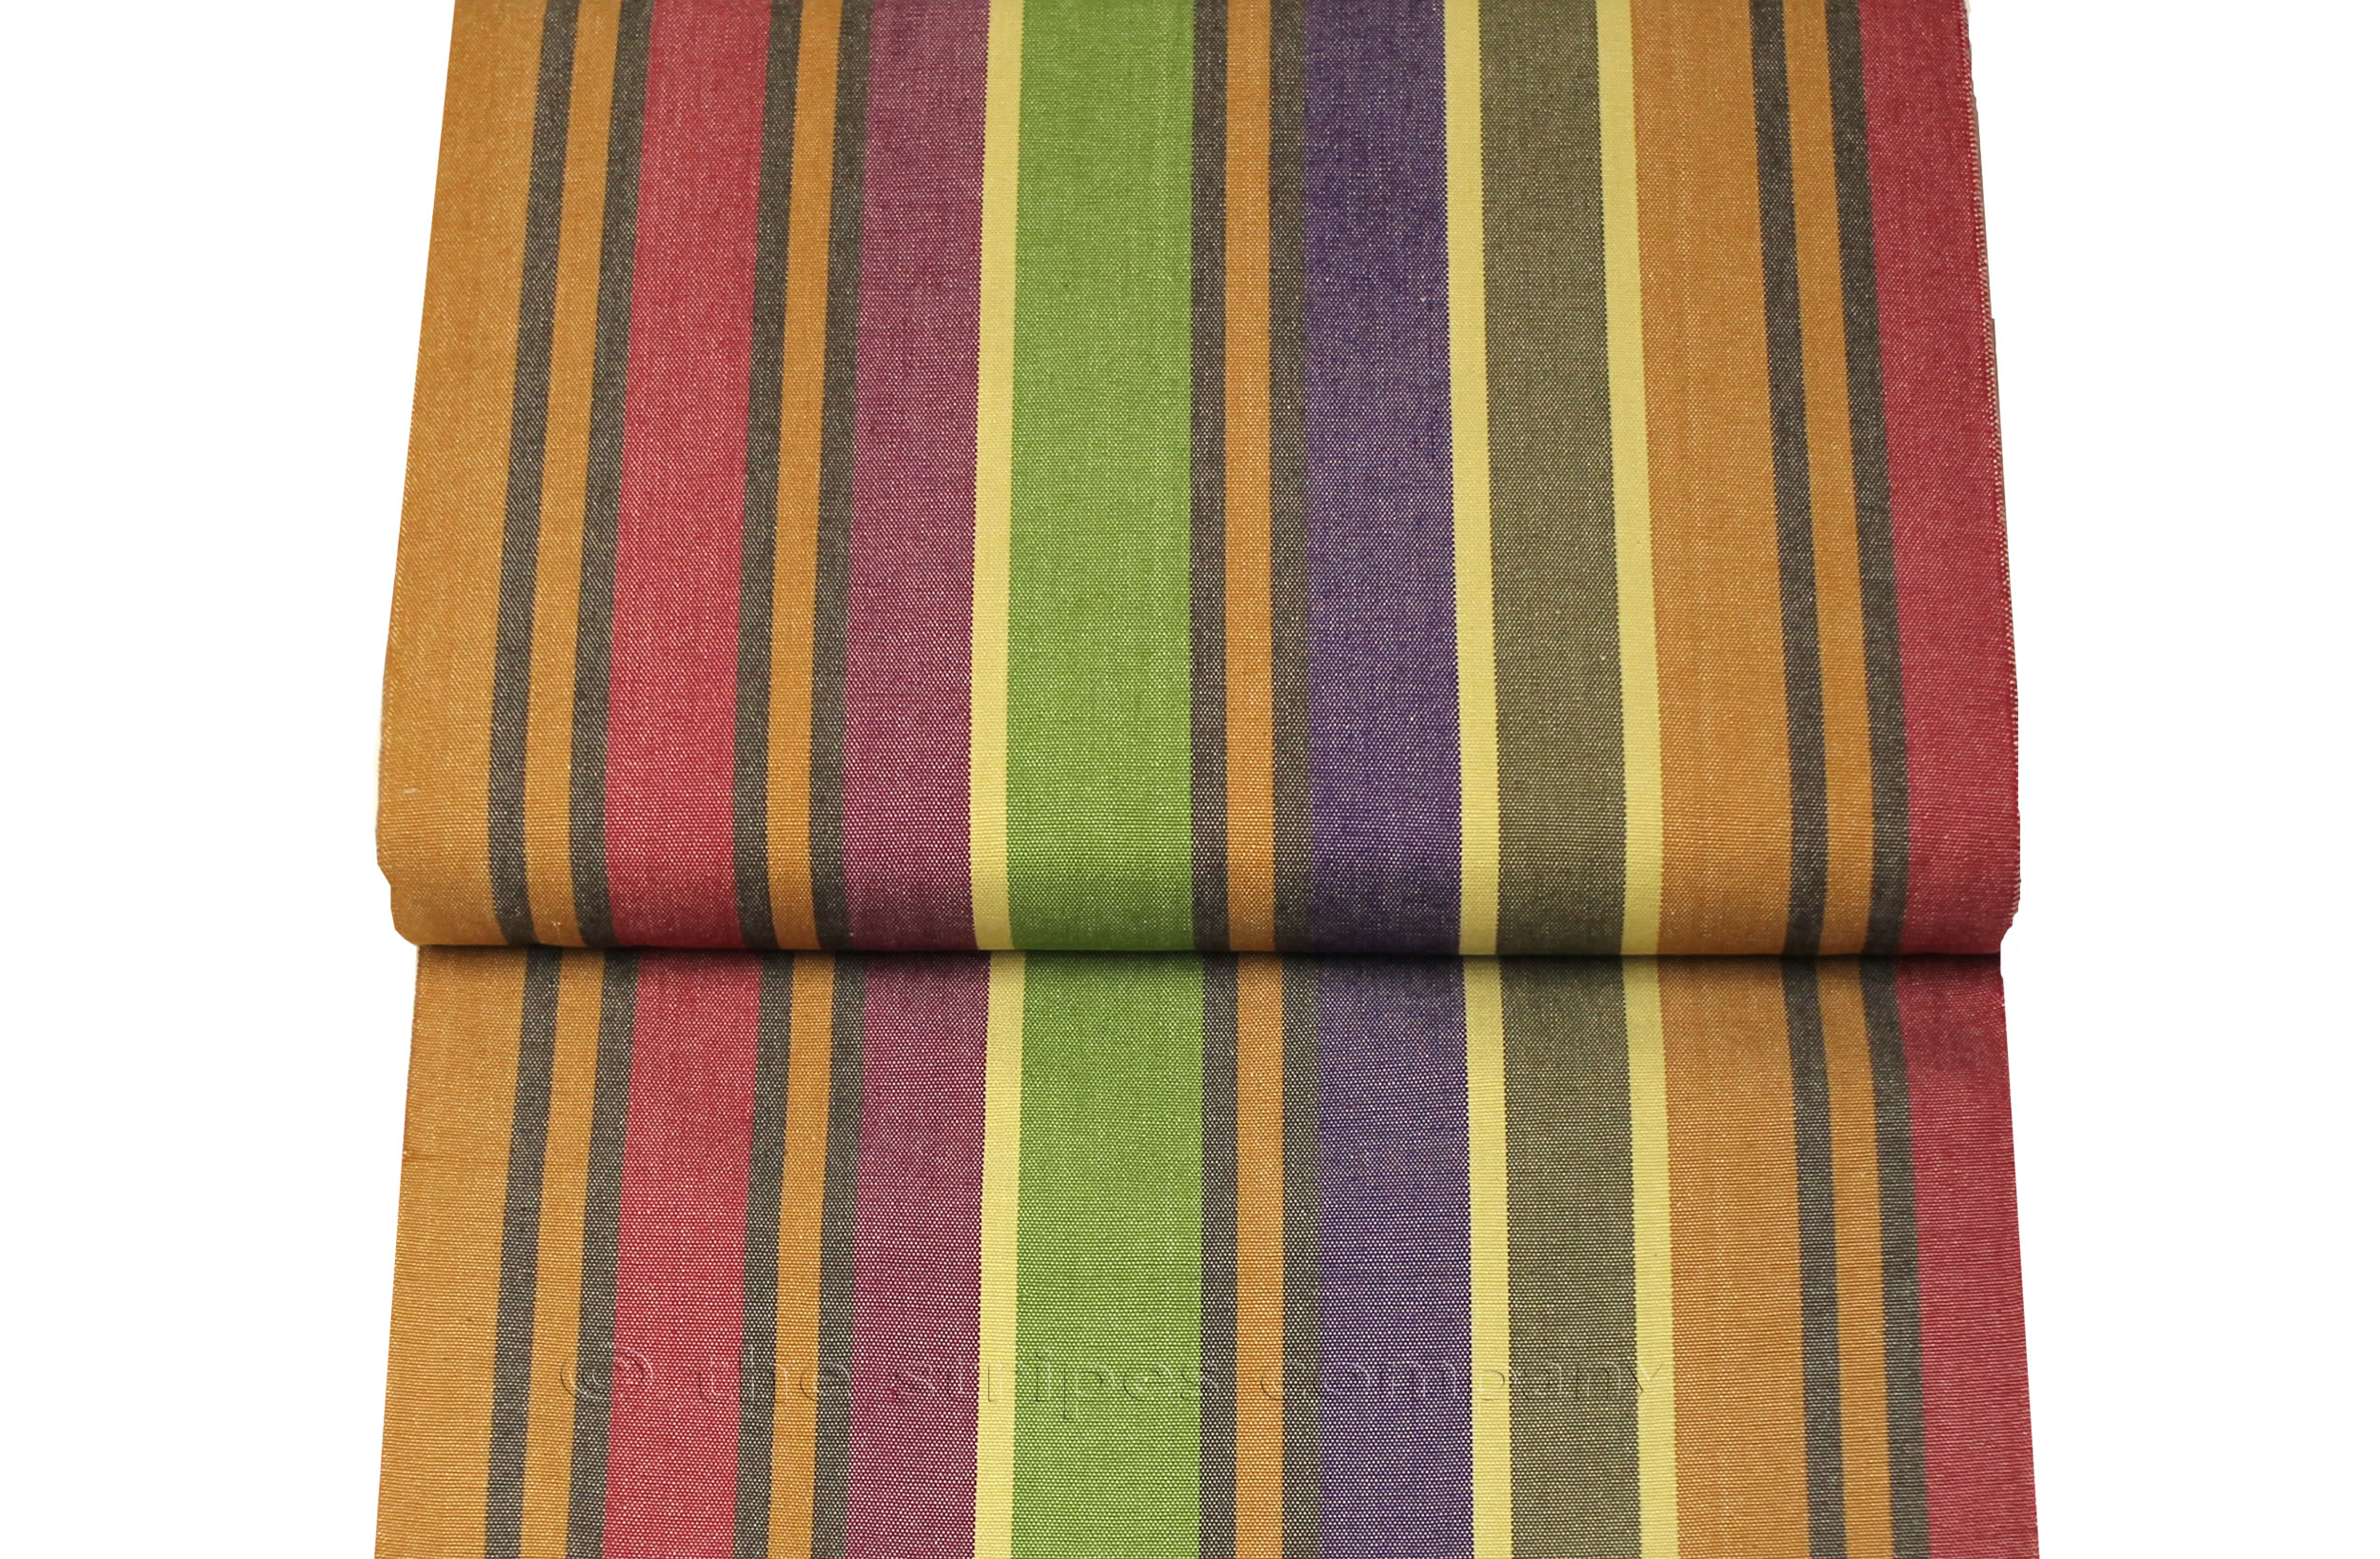 Directors Chair Covers | Replacement Director Chair Covers Caramel, Green, Beige, Purple Stripes